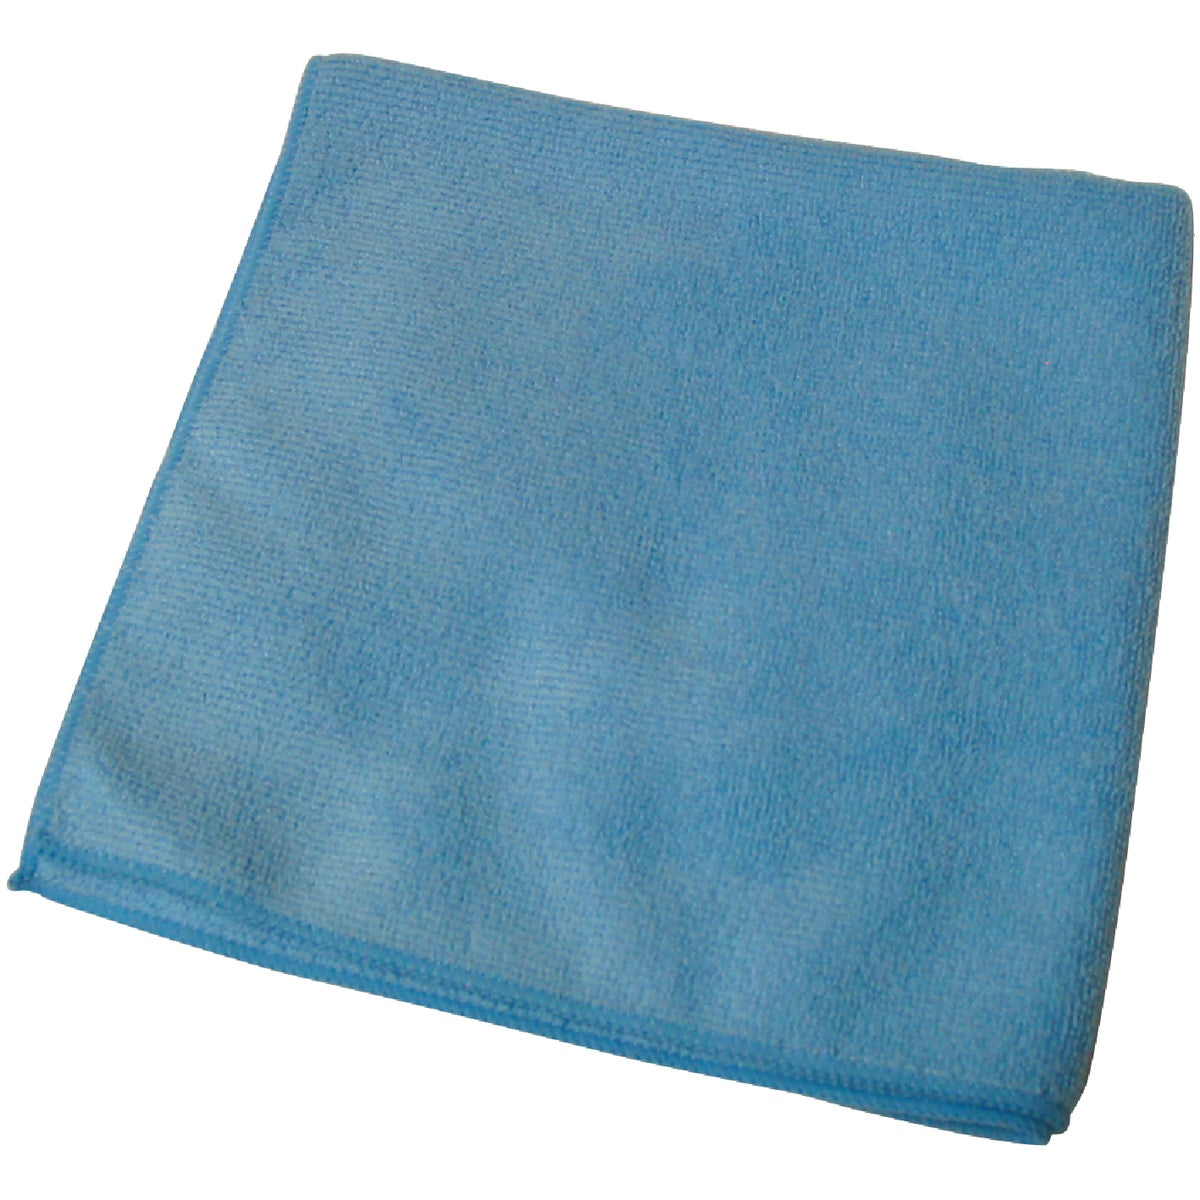 16X16 BLUE MF CLOTH - LFK501 by Impact Prod